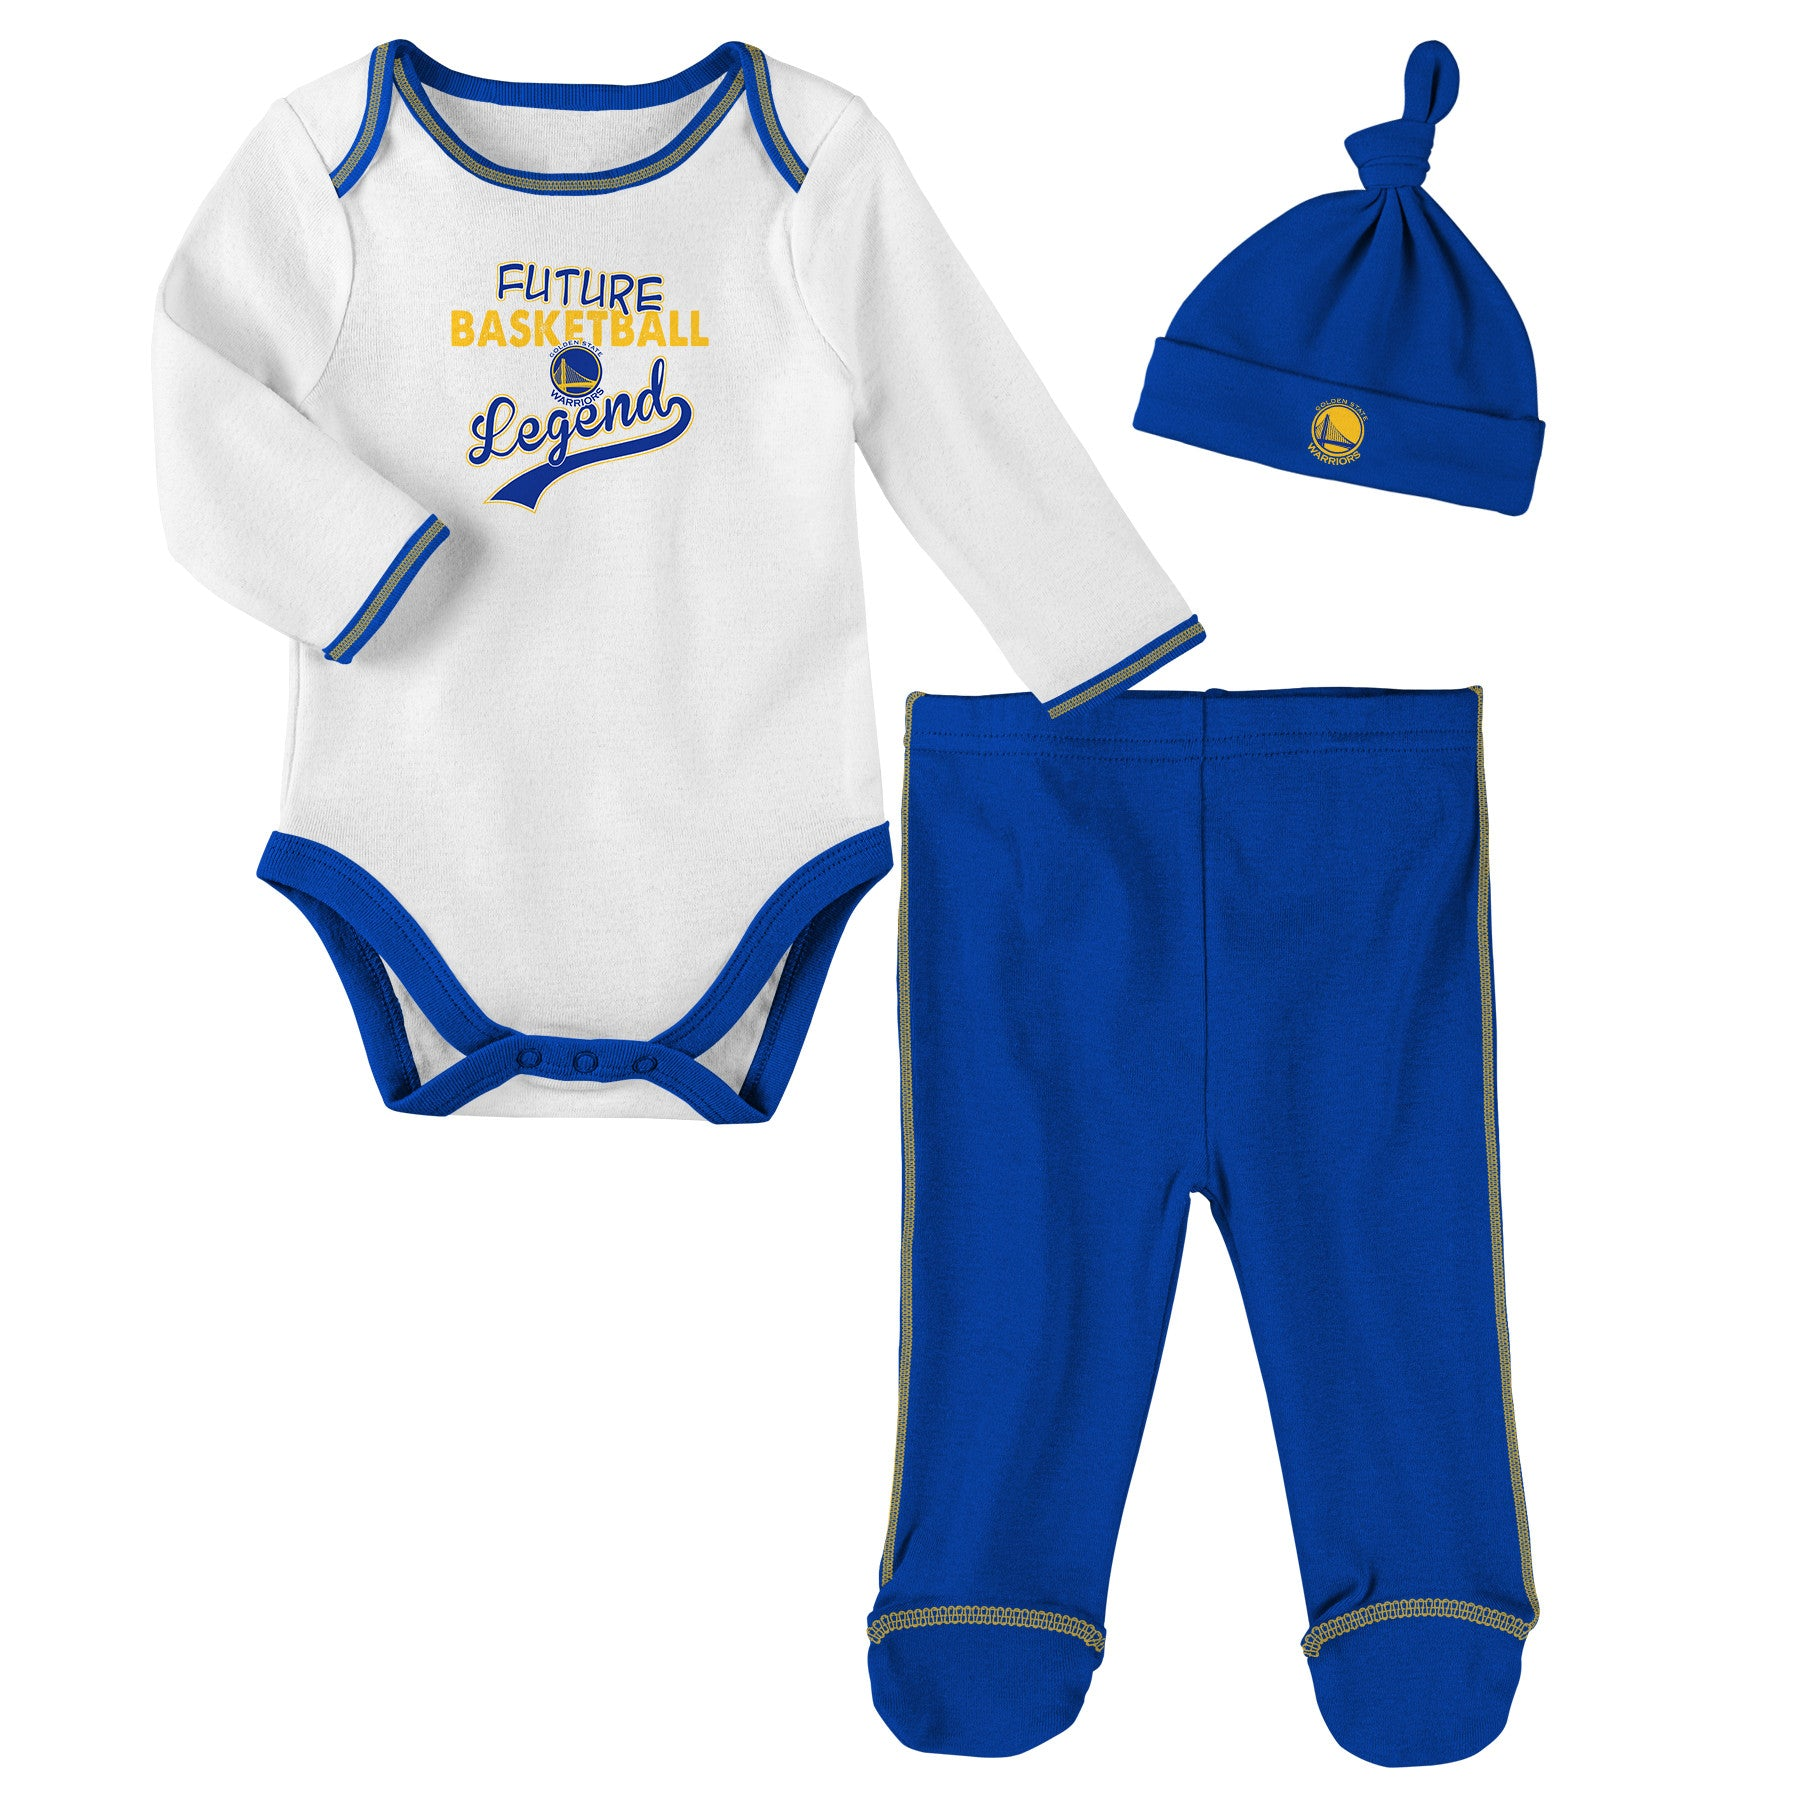 Golden State Warriors Future Basketball Legend 3 Piece Baby Outfit